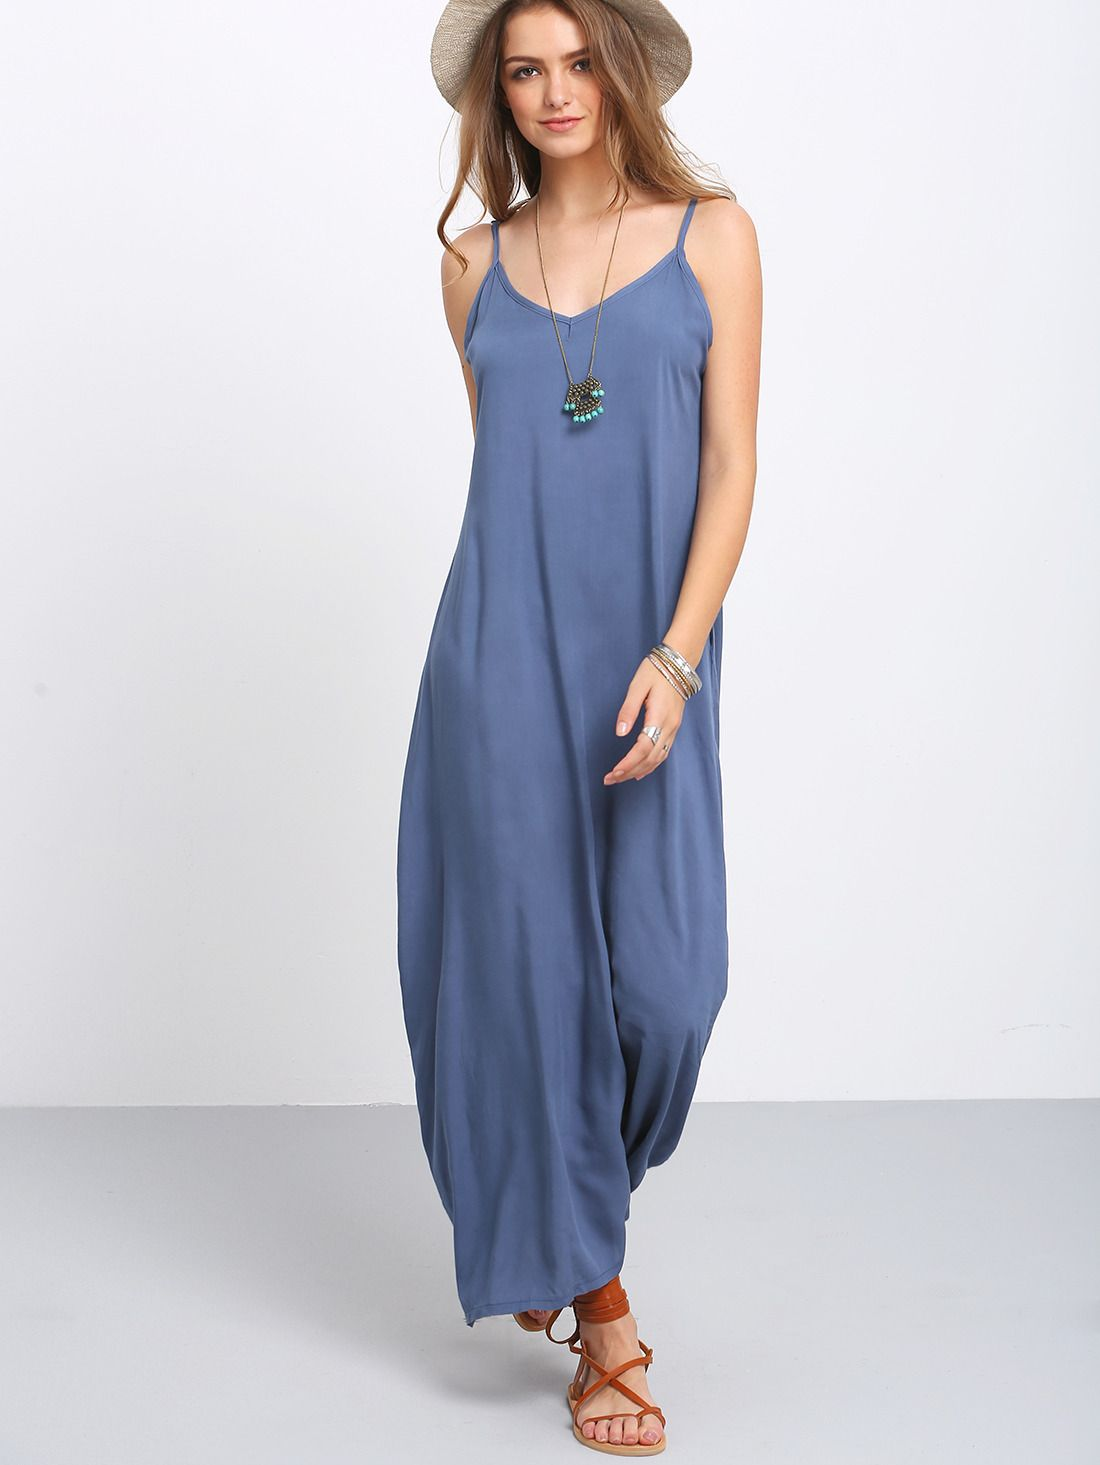 Long Slip For Under Maxi Dress How To Select